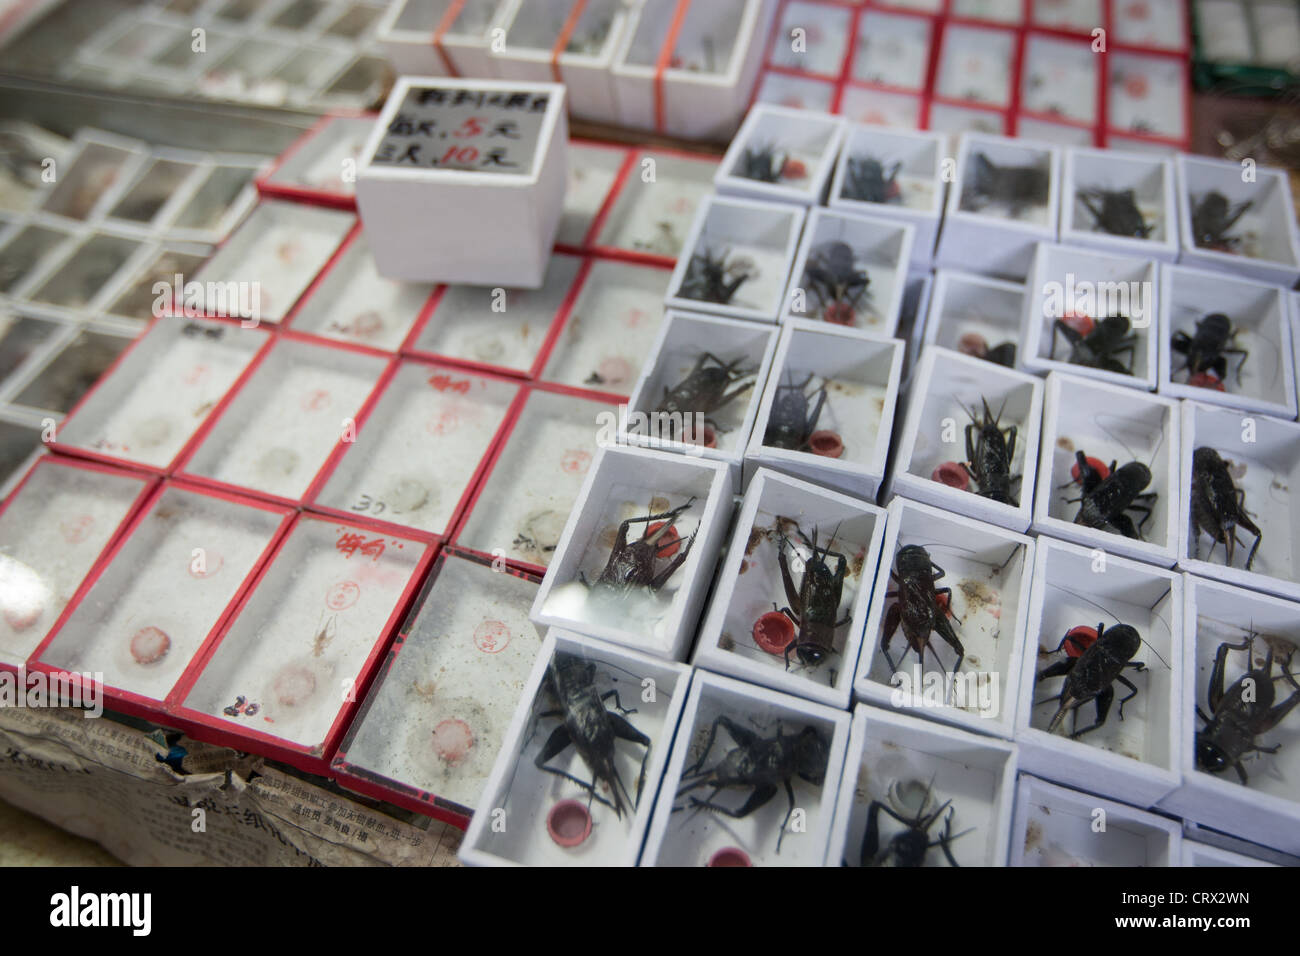 Crickets on sale at the Insect and Bird market, in Shanghai, China - Stock Image